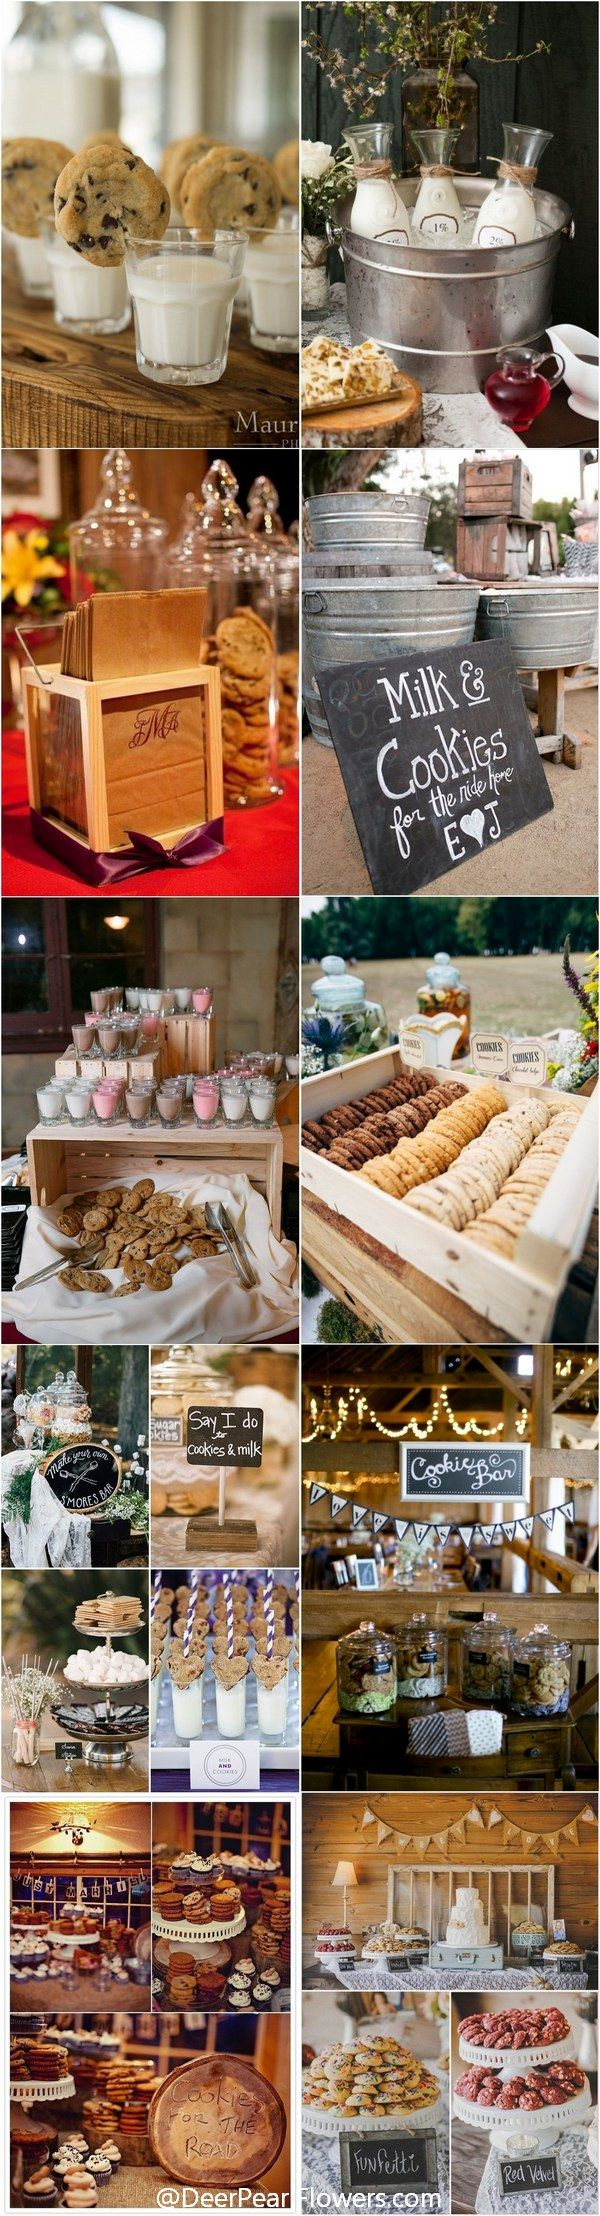 30 Trendy Wedding S\'more, Cookies & Milk Bar Ideas | taste buddies ...